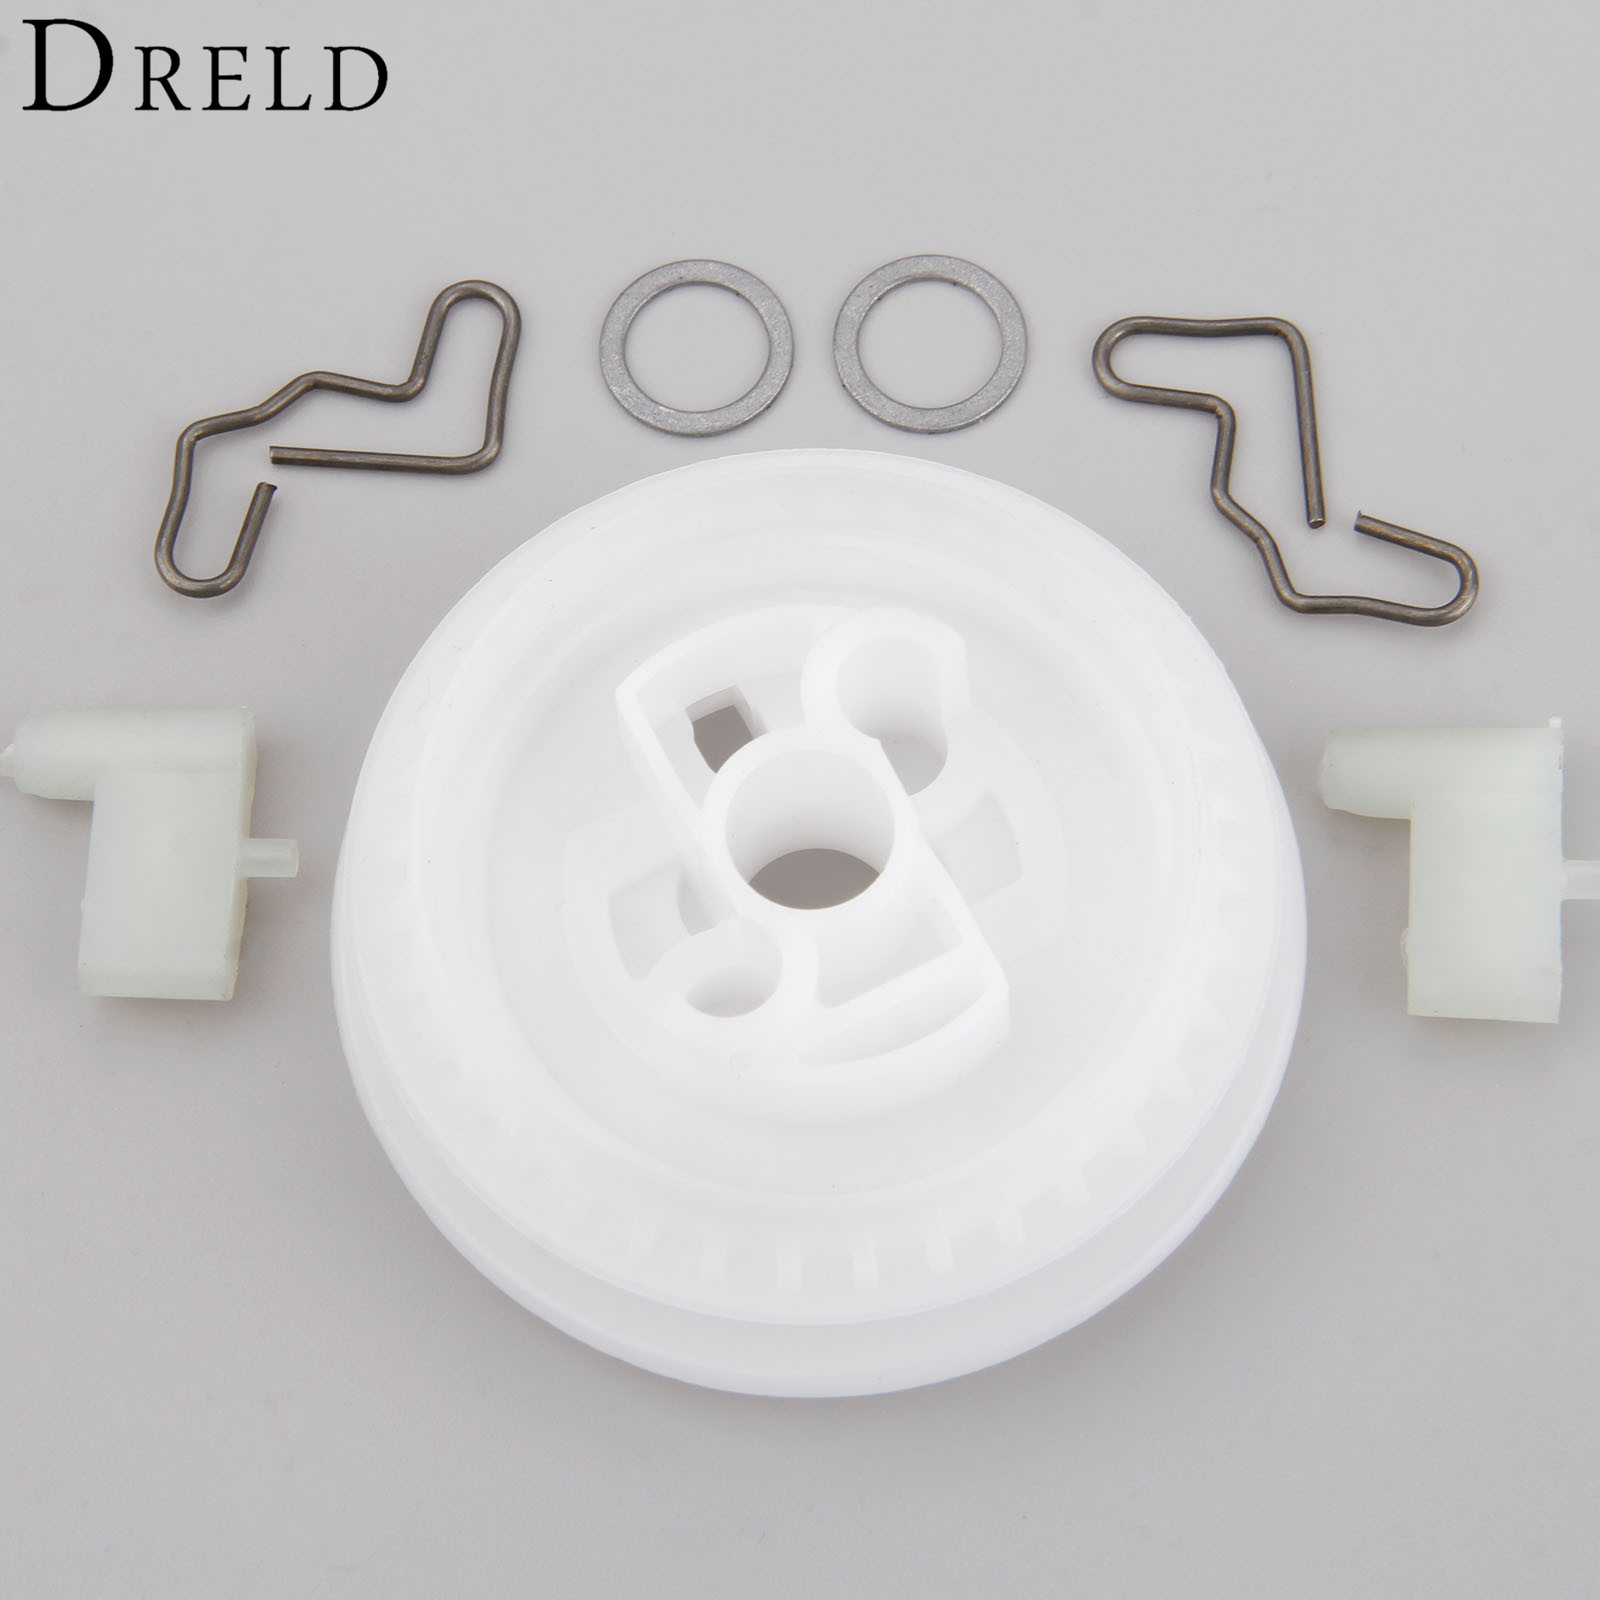 Recoil Starter Pulley Pawl Washer Spring Kit For Stihl MS180 MS170 MS250 MS230